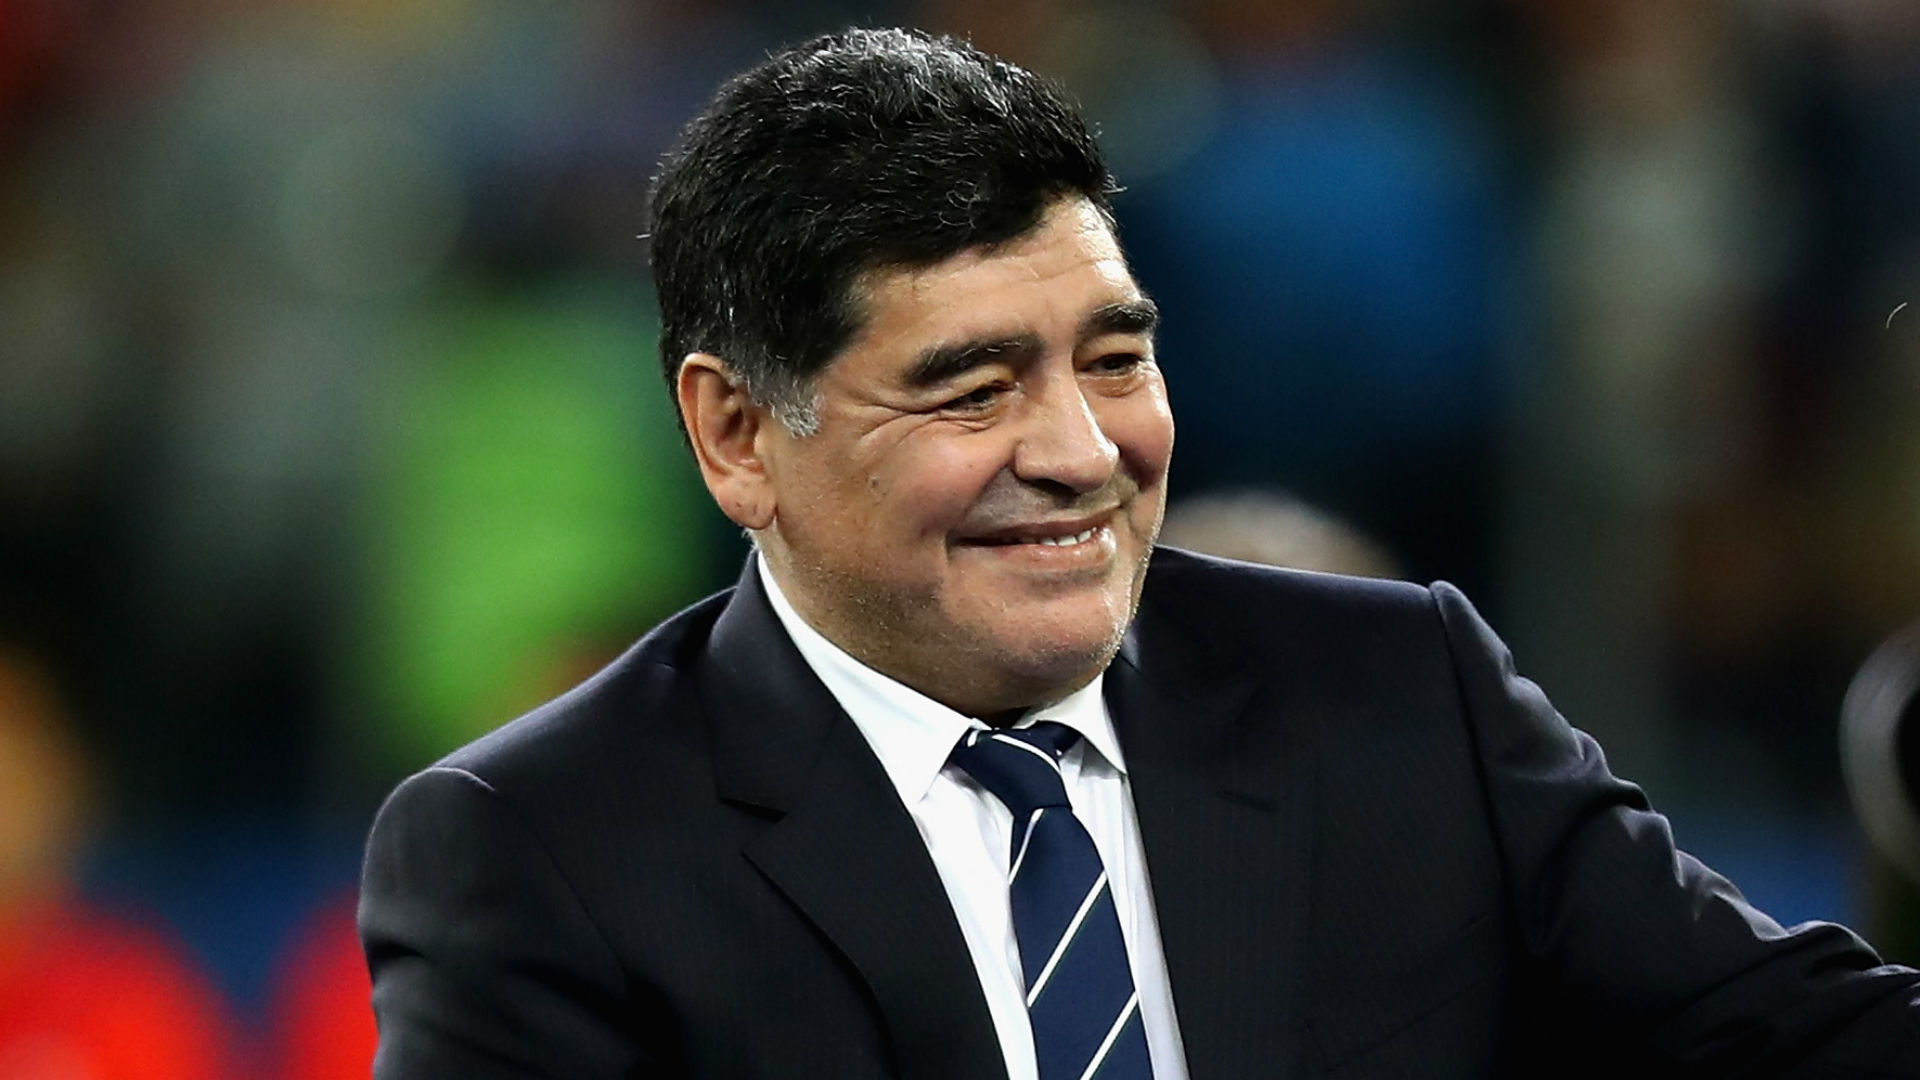 Diego Maradona dies: FIFA chief Infantino pays tribute to 'simply immense' Argentina legend